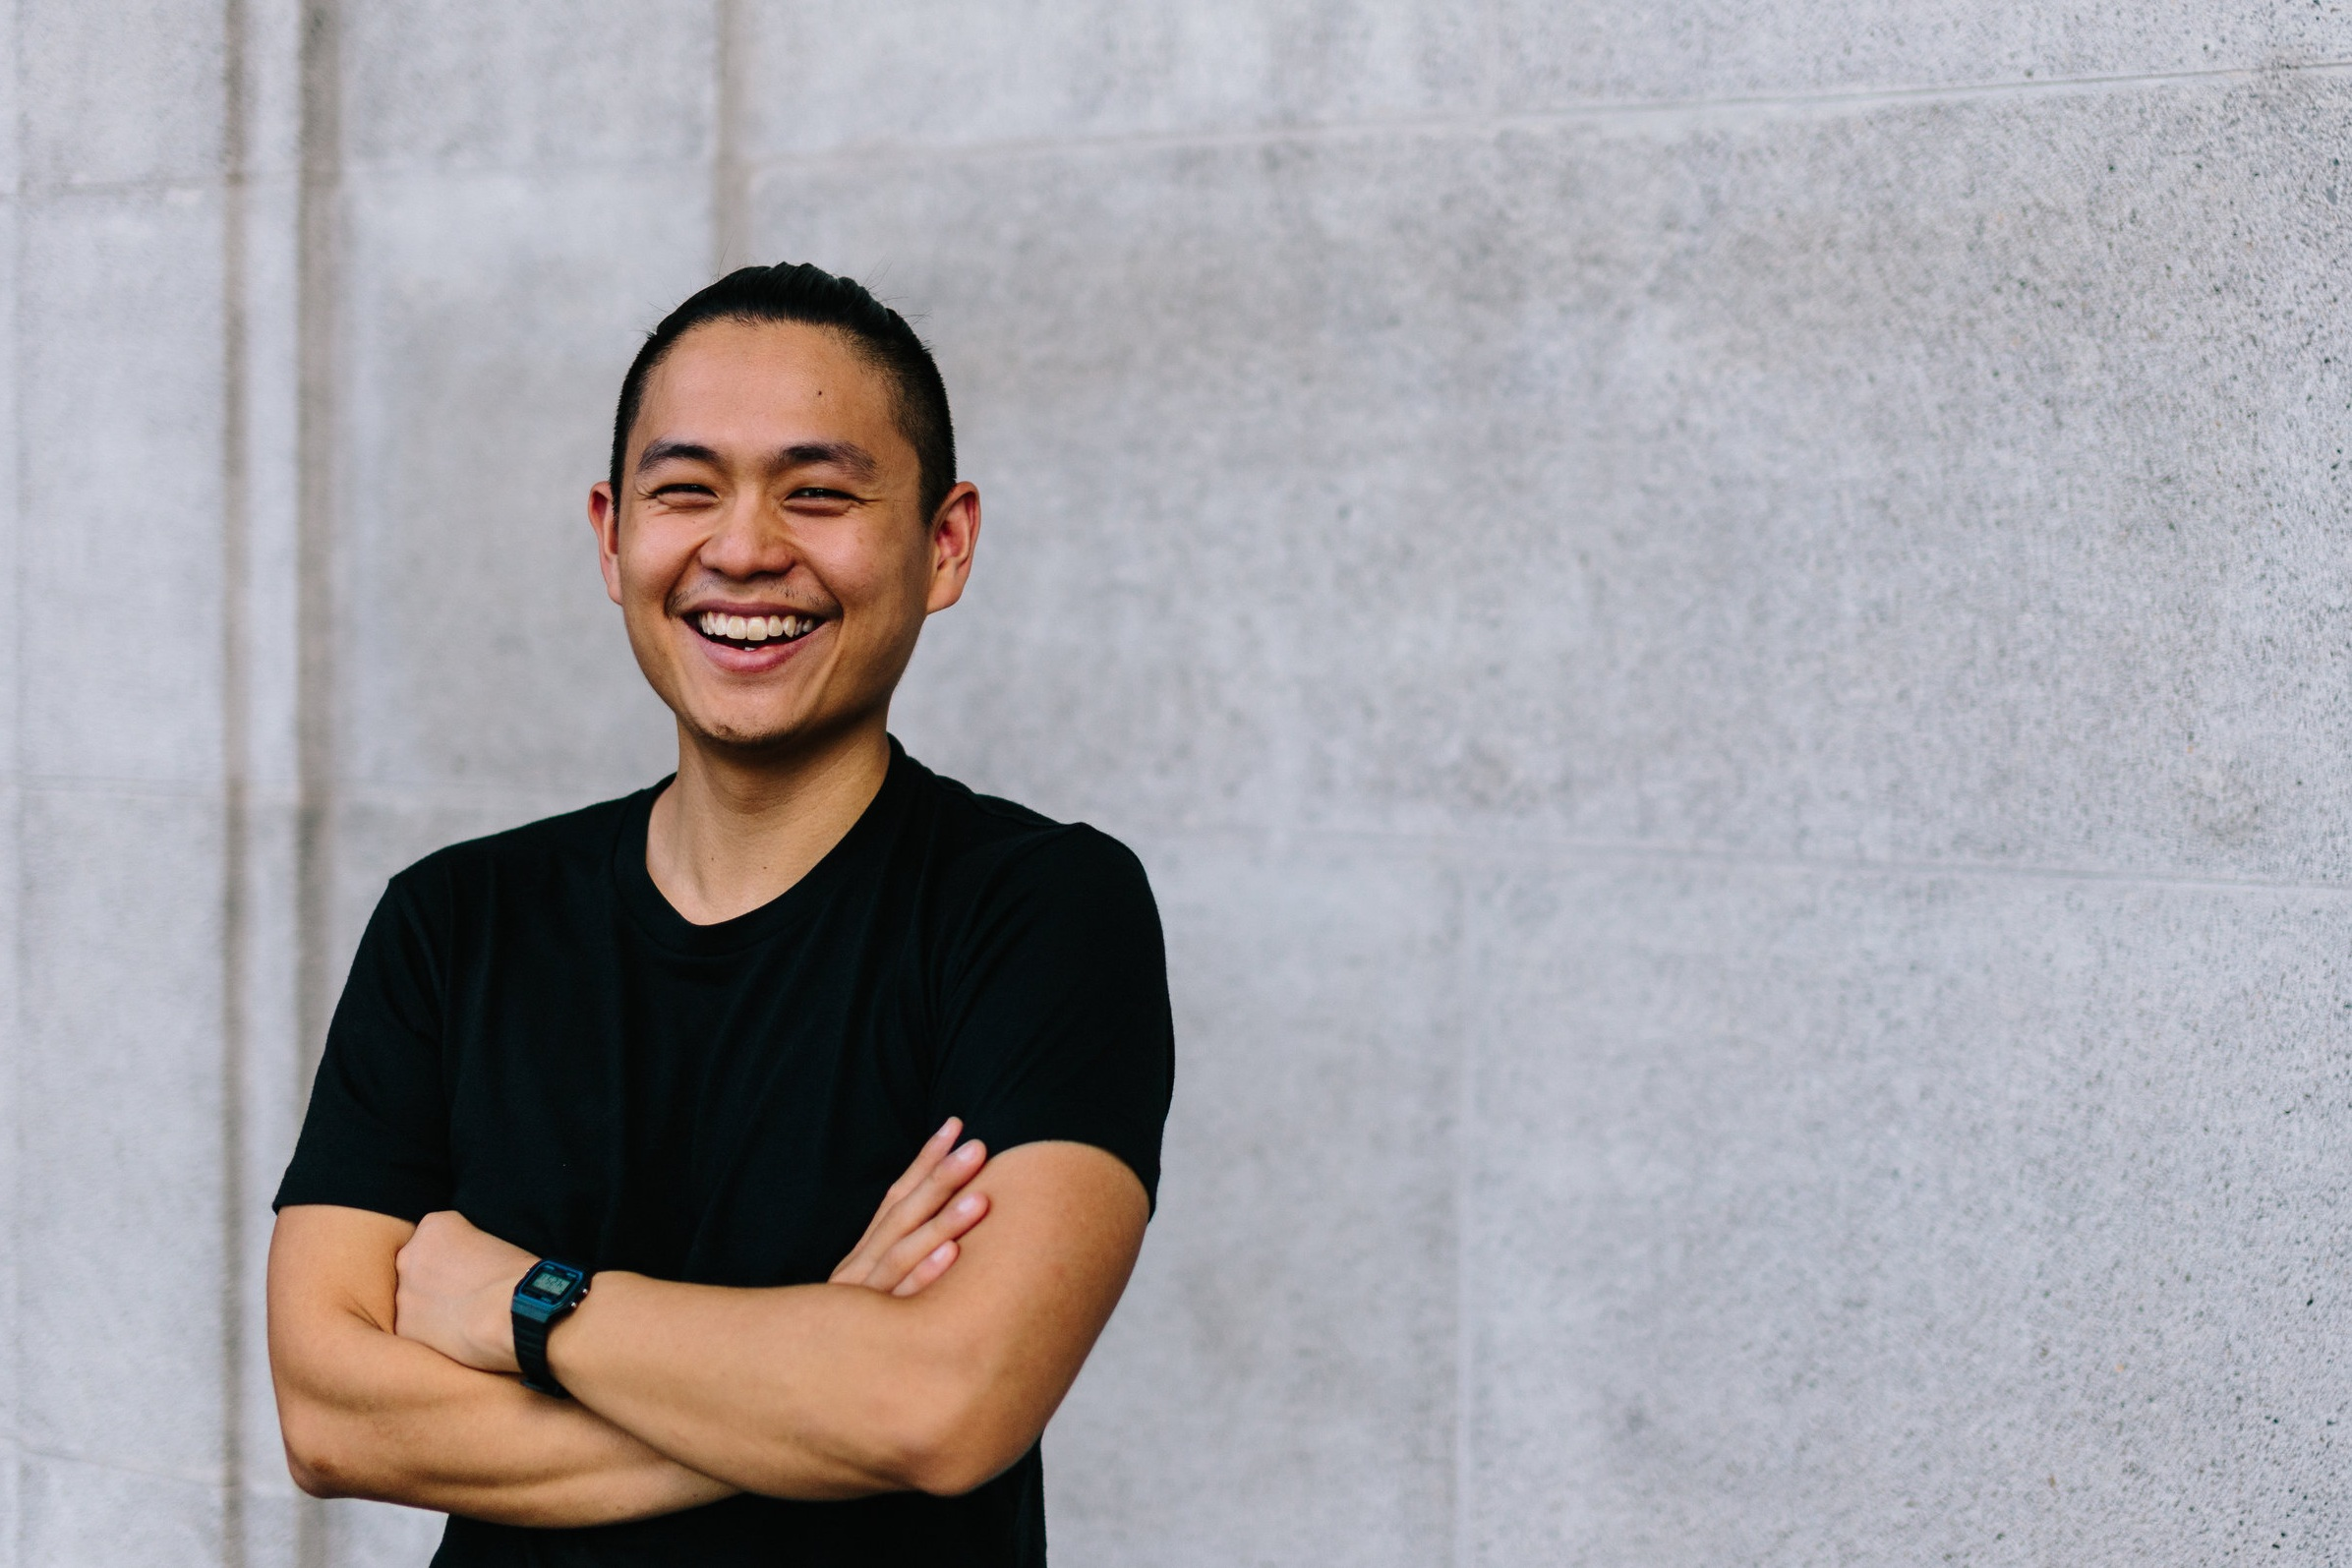 WU CHI SENG - FOUNDER | CHIEF TRAINERChi Seng is a certified FISAF International Personal Trainer and majored in Film Studies. IN addition to FITNESS, He likes studying GEEKY STUFF and listening to good music. He plays the cello & the electric guitar. He is father to Puffy & 6 cats.